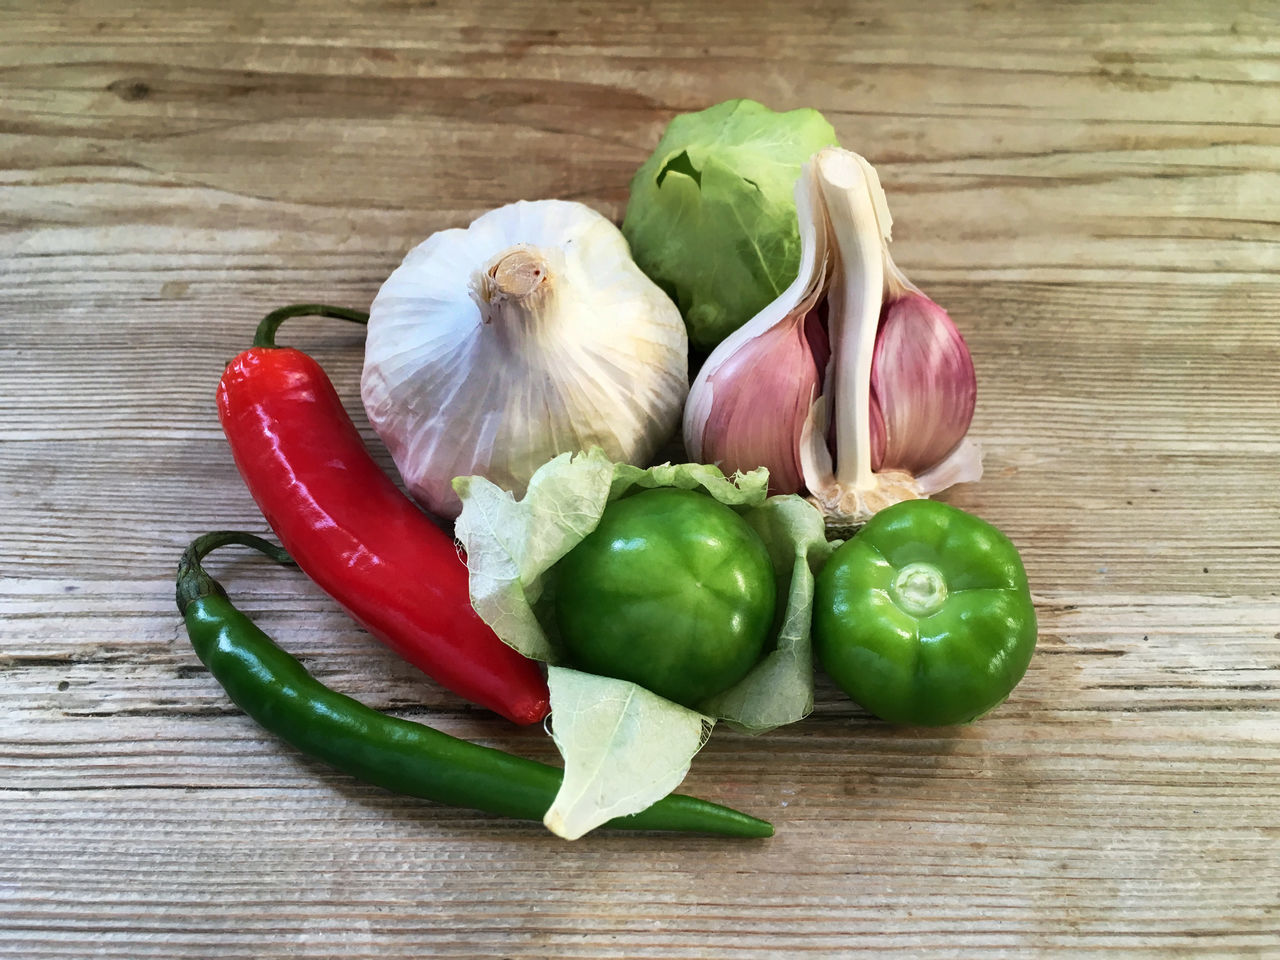 Chillies Chopped Food Food And Drink Freshness Garlic Green Chillies Healthy Eating Hot Sauce Ingredients Mexican Culture Mexican Food Mexican Husk Tomato No People Red Chili Pepper Salsa Salsa Verde Still Life Table Tomate Tomatillo Tomatillos Tomato Vegetable Wooden